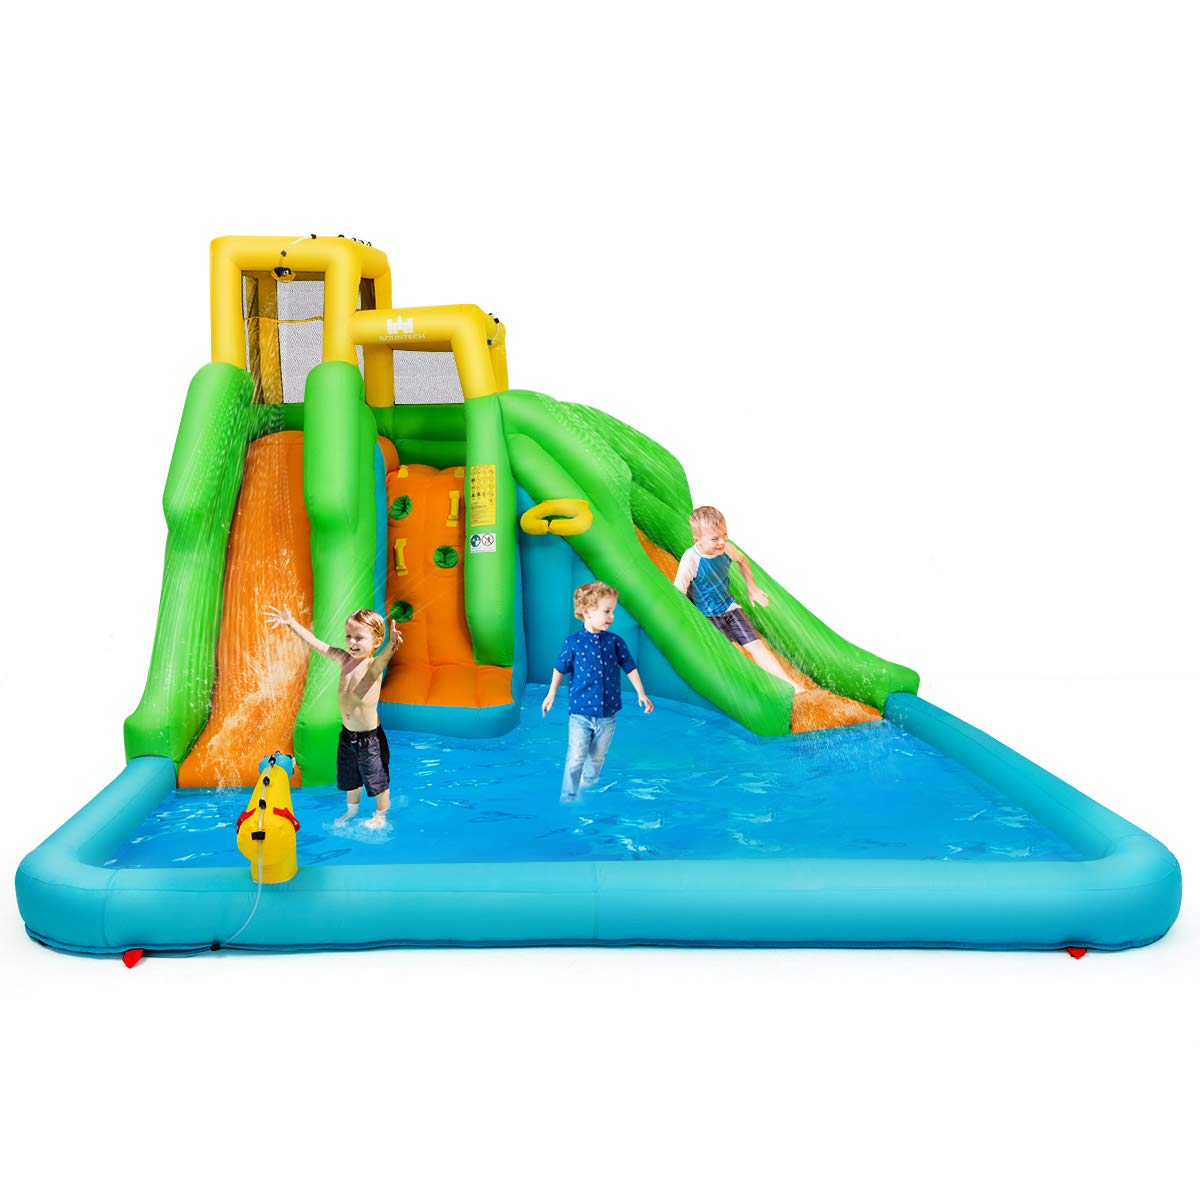 BOUNTECH Inflatable Bounce House, Mighty Water Pool with Two Slides, Climbing Wall, Basketball Rim, Splash Pool, Water Cannon, Including Carry Bag, Repairing Kit, Stakes, Hose (Without Blower)